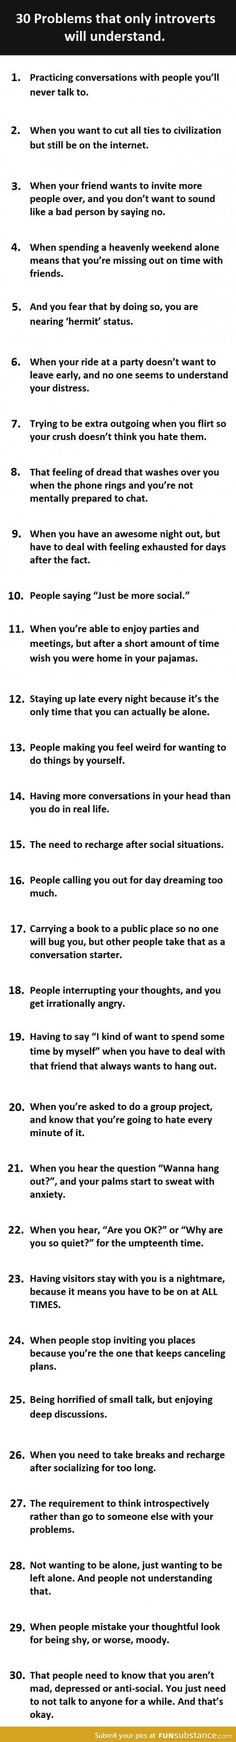 30 introvert problems - FunSubstance.com